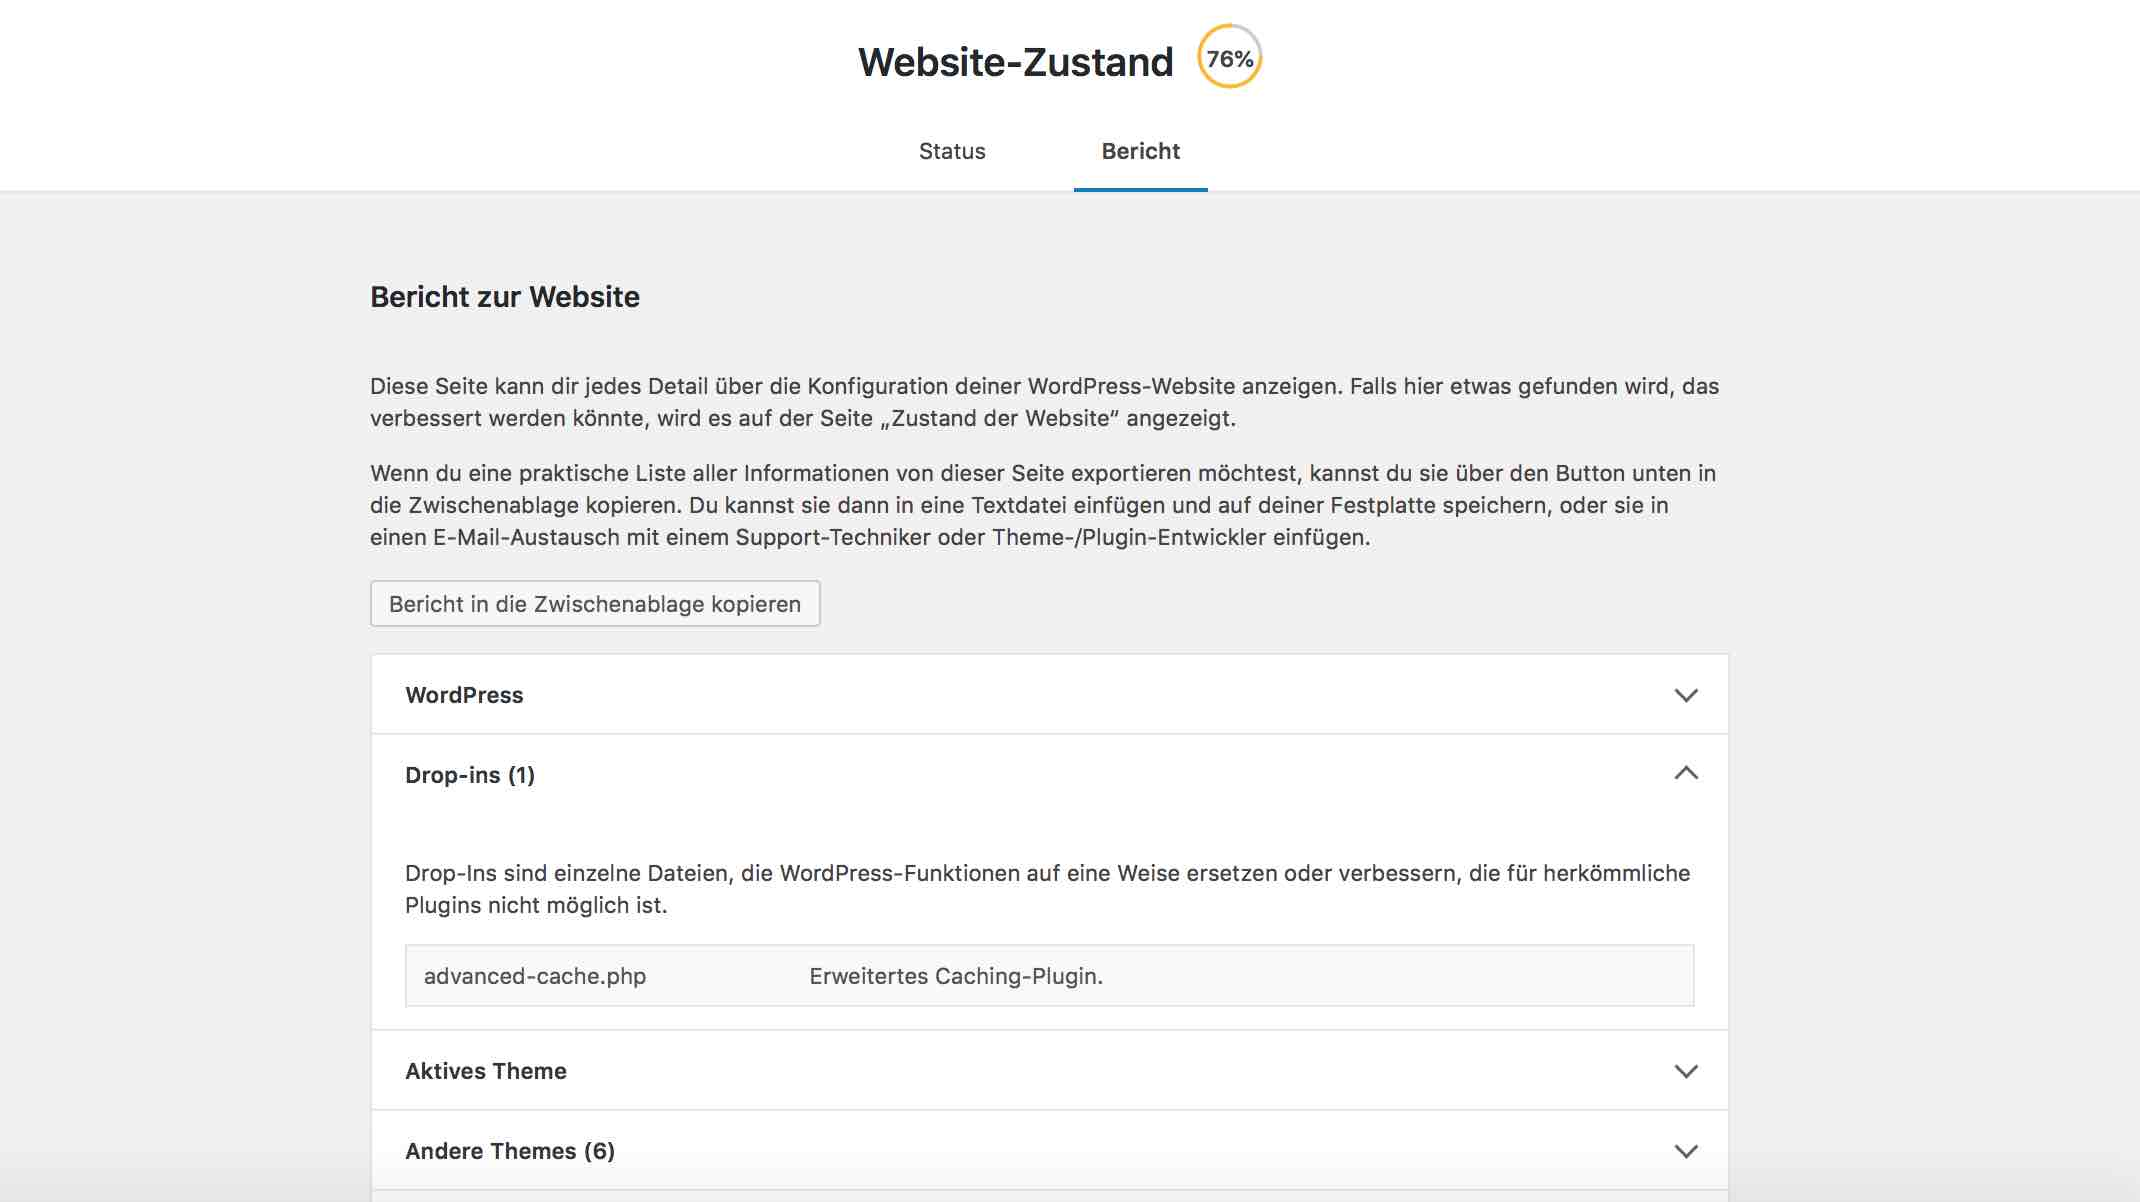 WordPress Statusbericht im Update 5.2